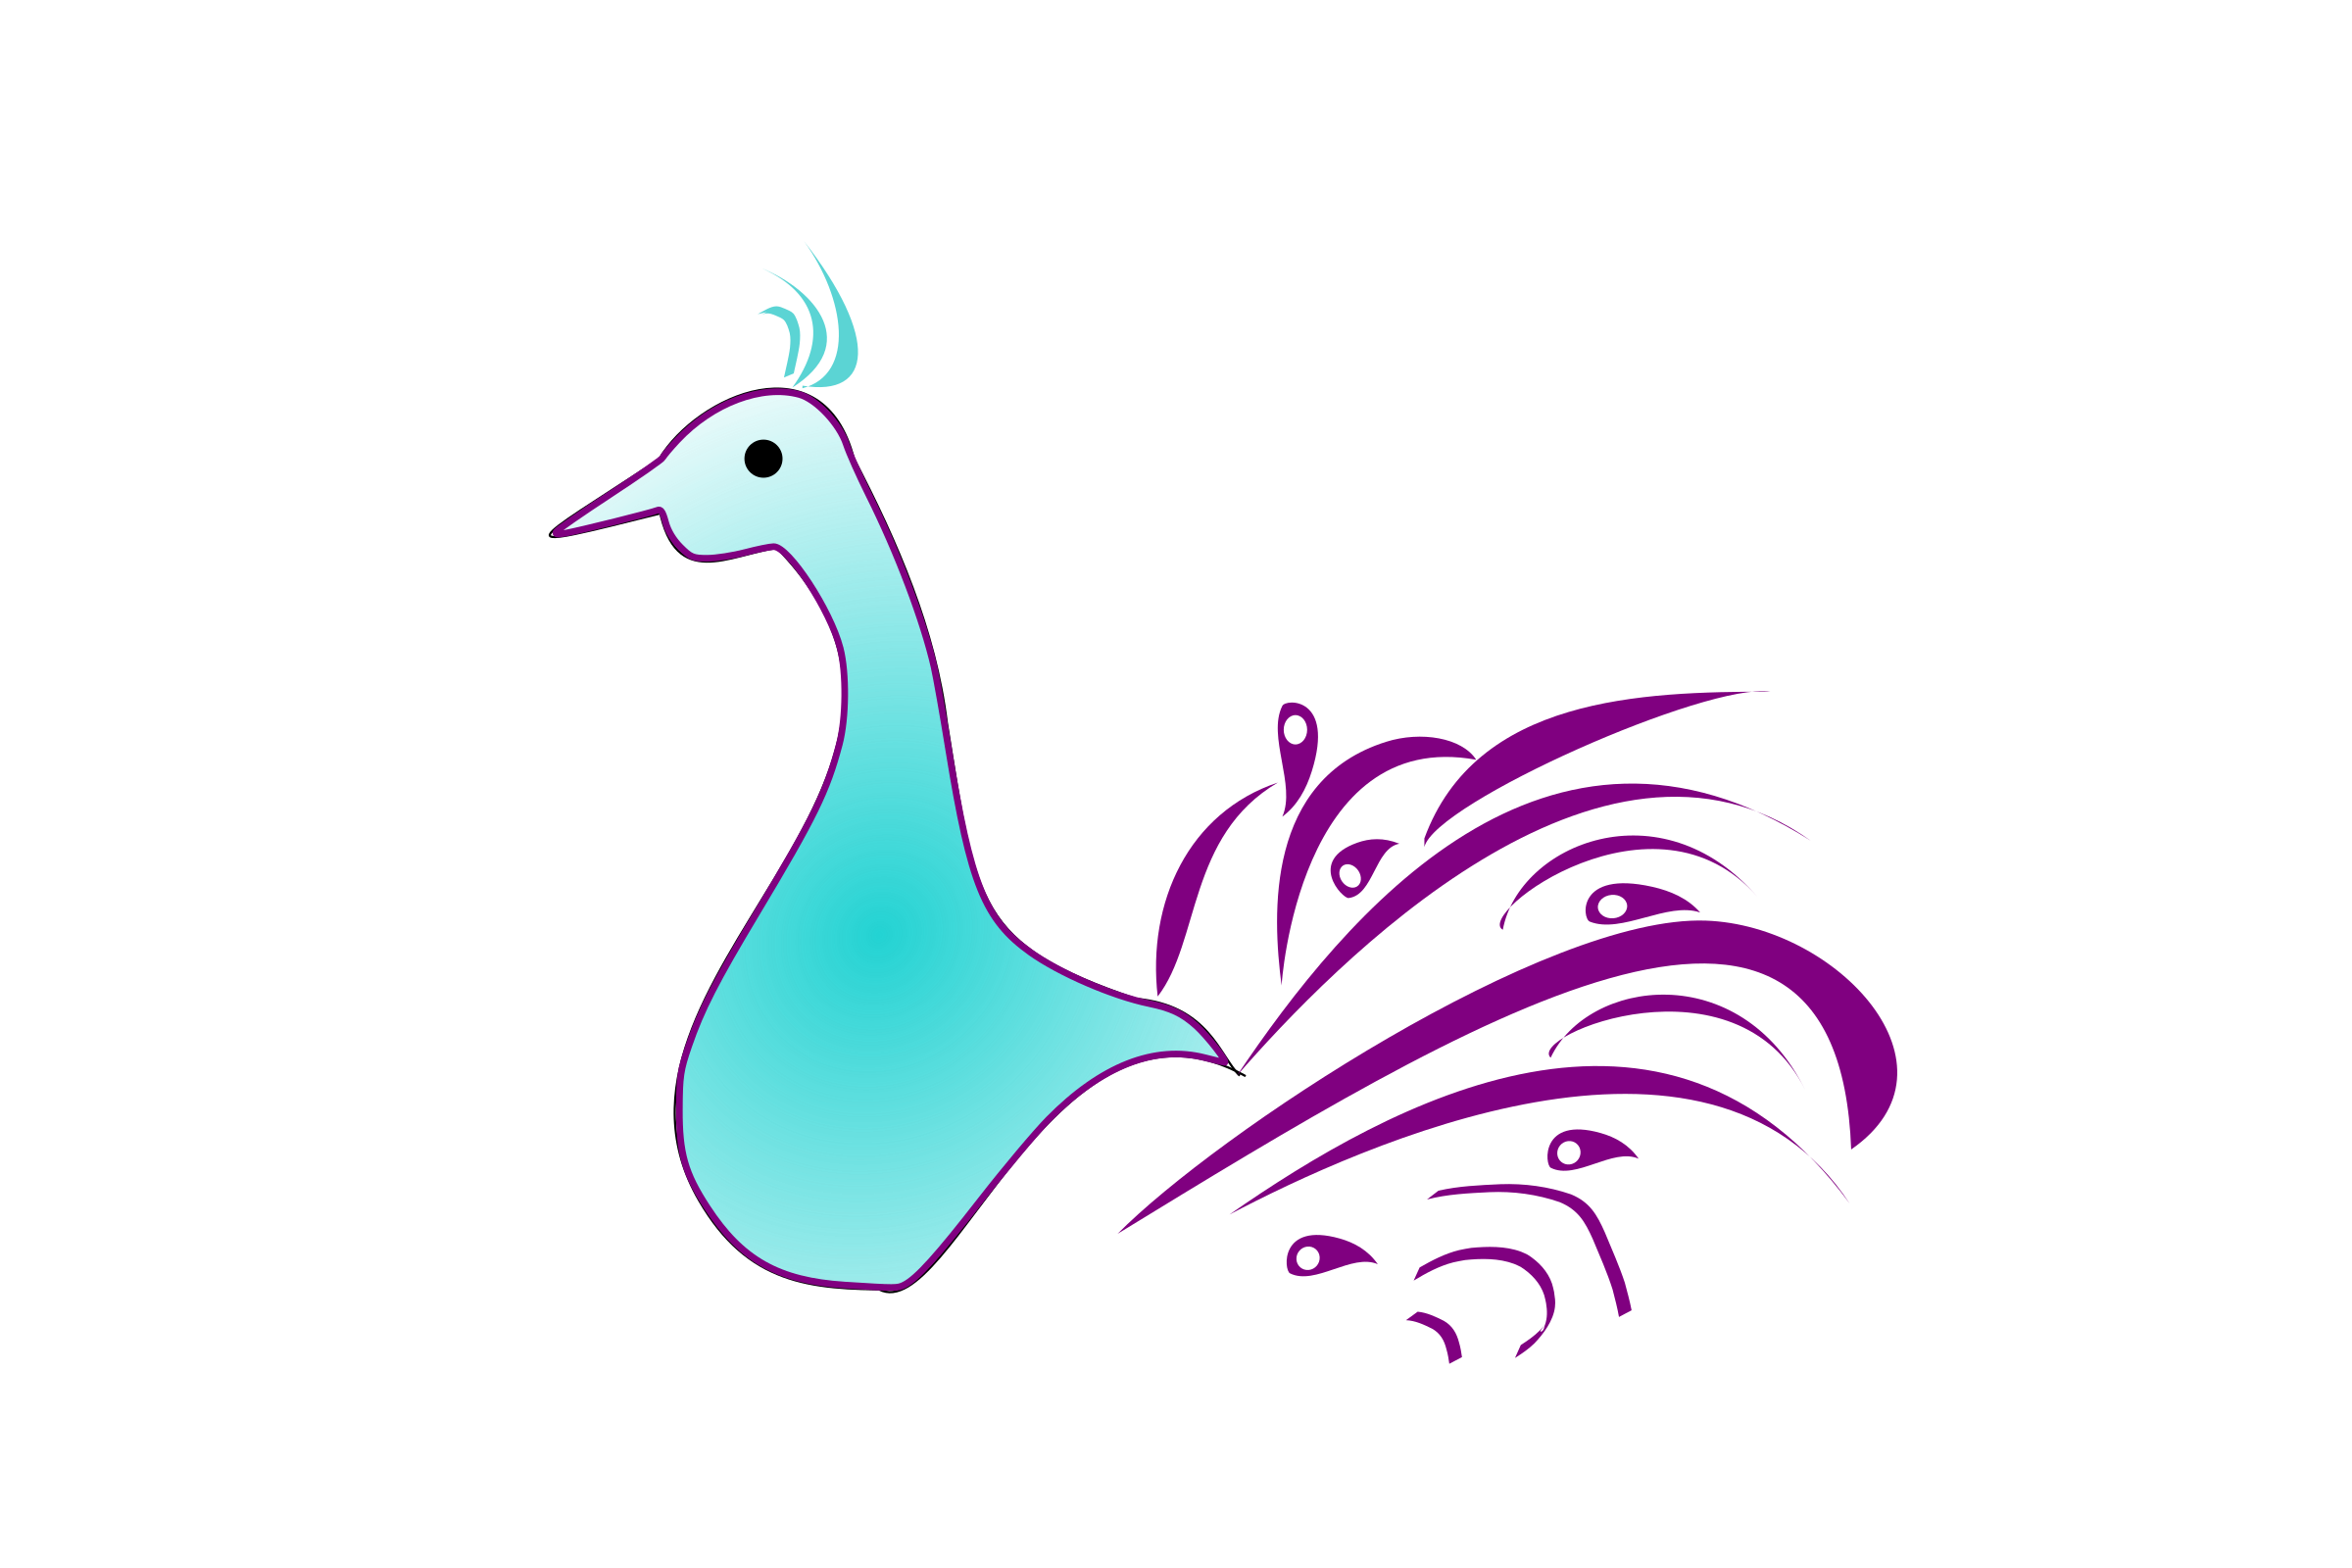 Free Peacock Clipart, Download Free Clip Art, Free Clip Art on Clipart  Library